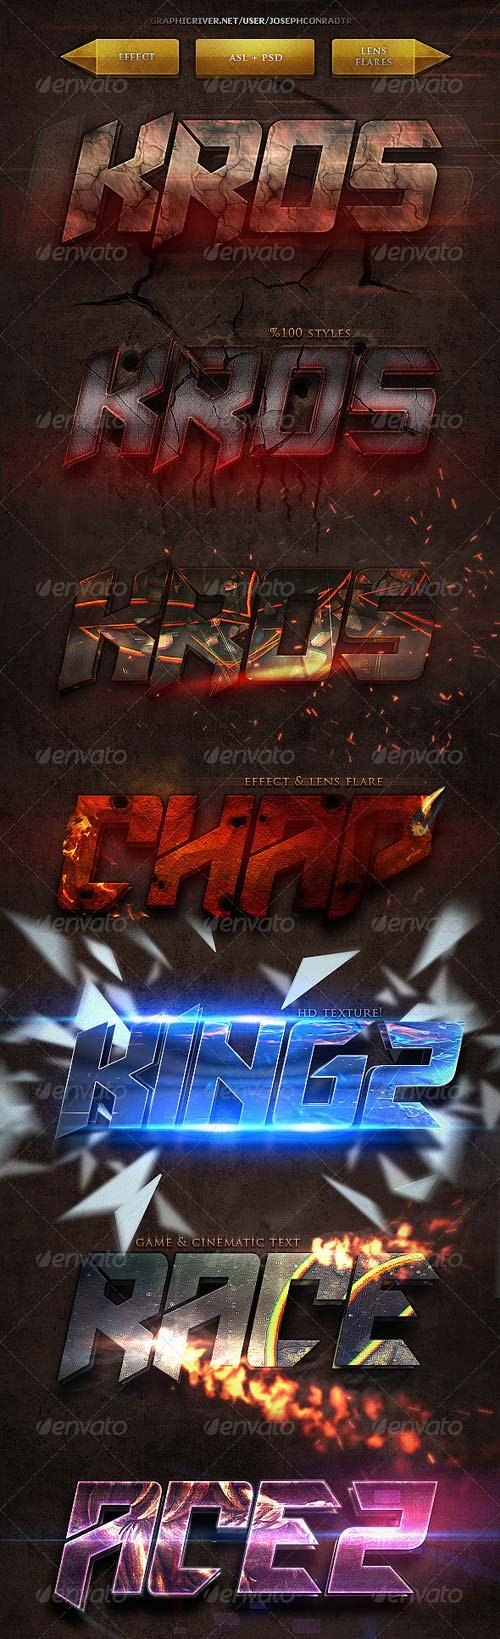 GraphicRiver Gametic Text Styles